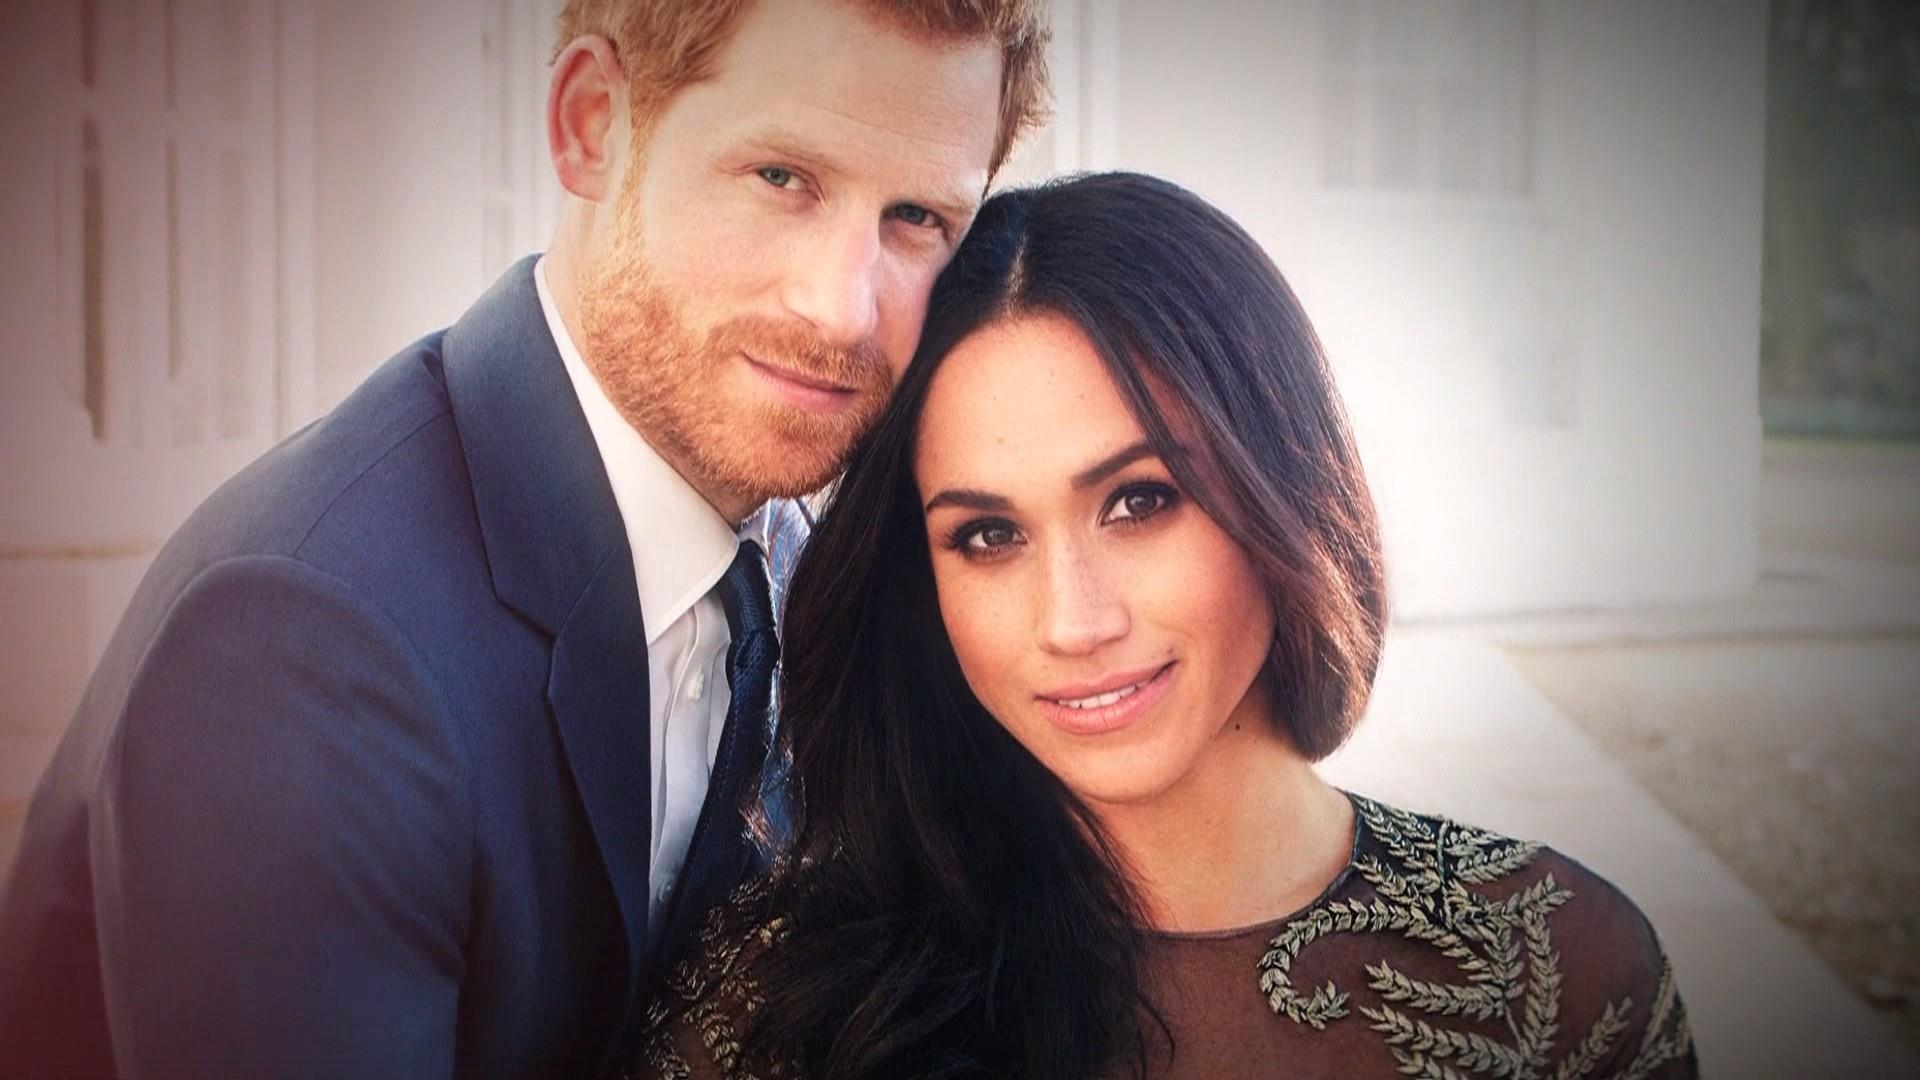 Image result for Meghan Markle Confirms Her Father Will Not Walk Her Down The Aisle.